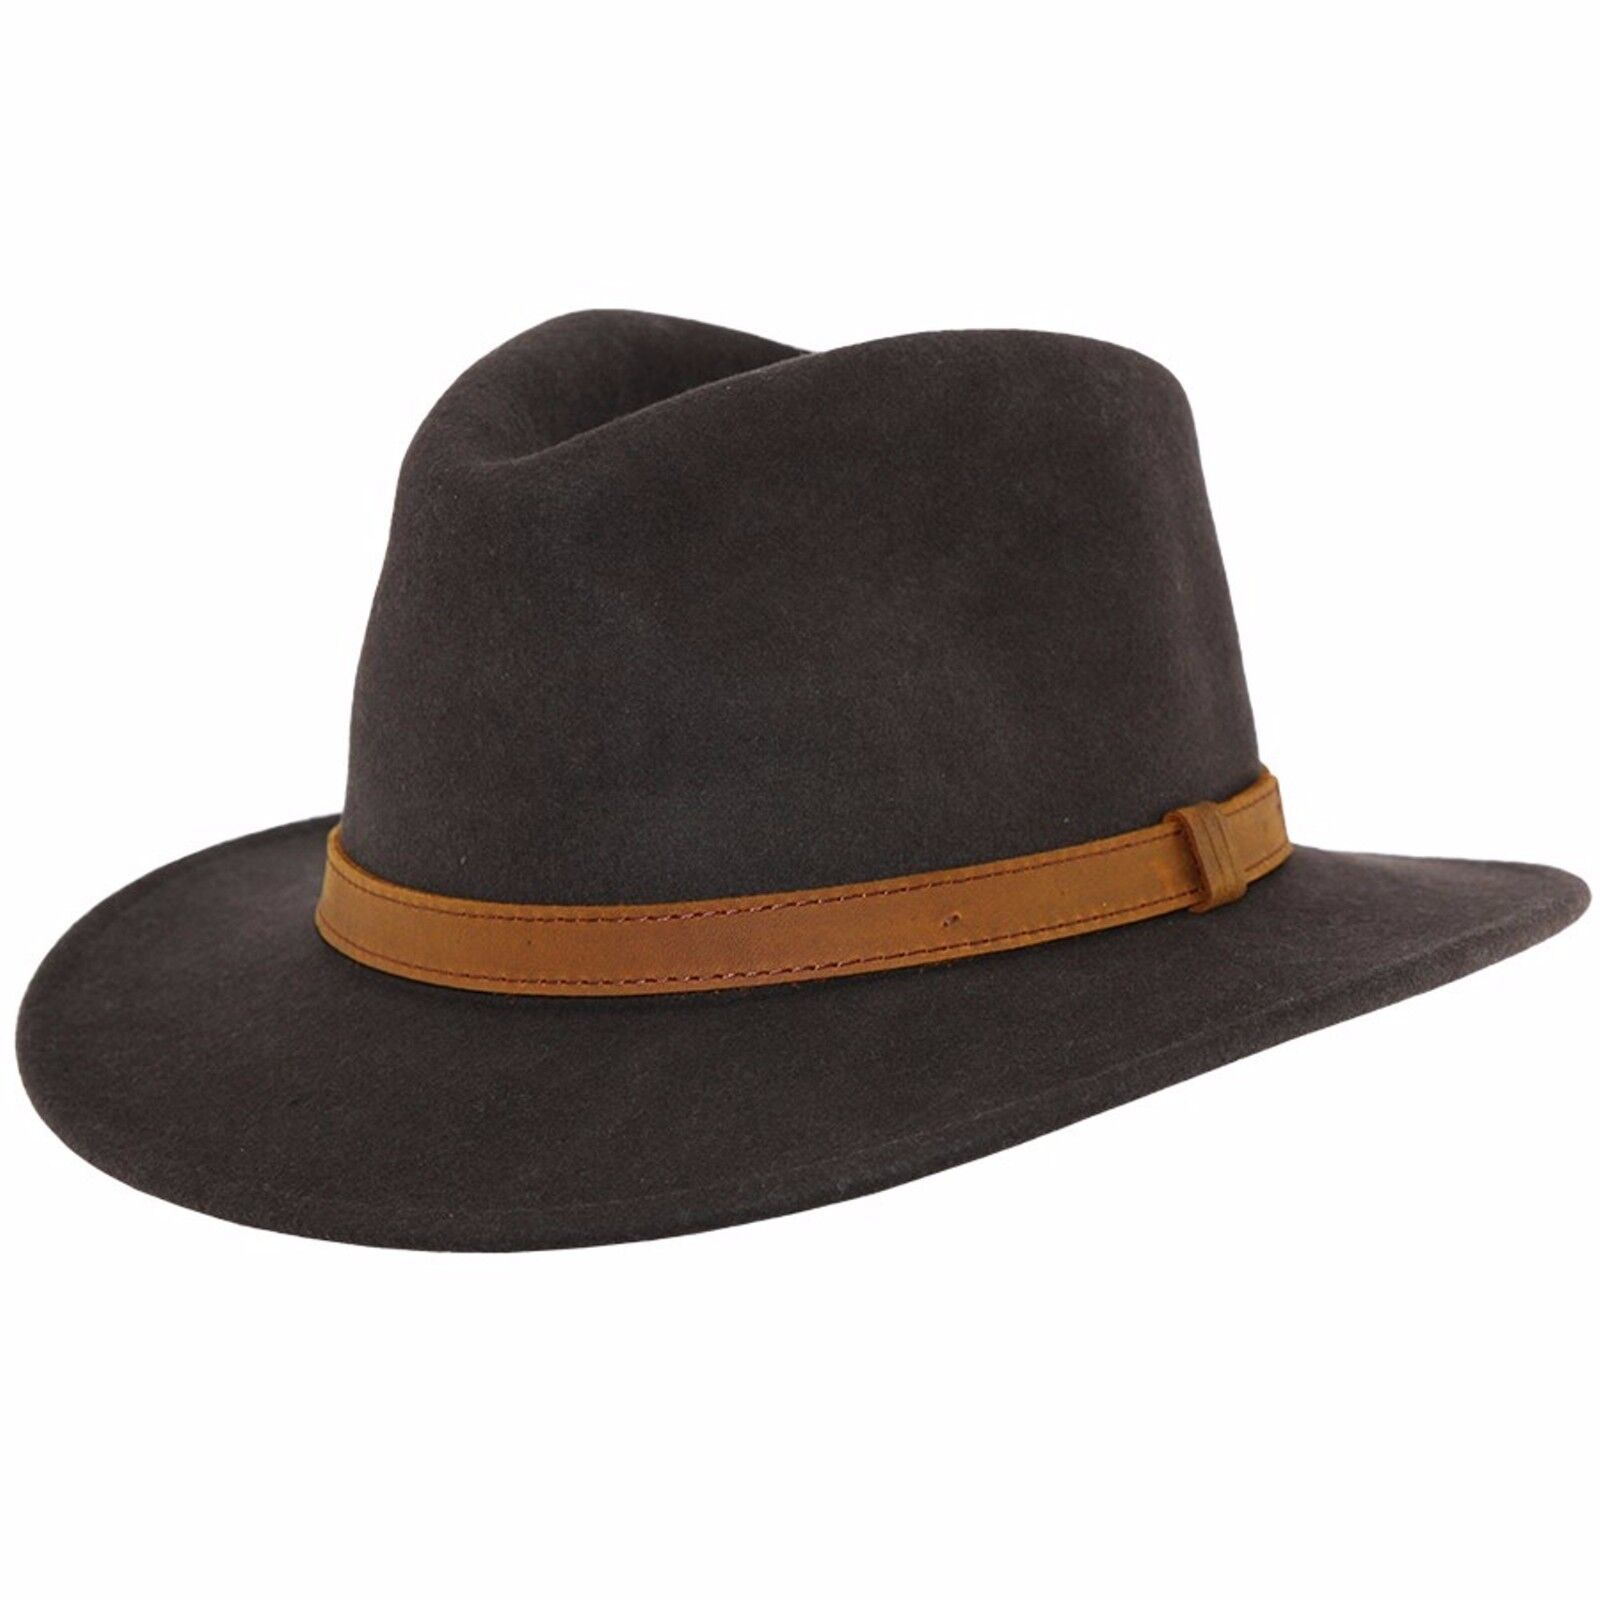 4e79b94013f Gents Crushable Camel 100% Wool Felt Fedora Trilby Hat With Leather Type  Band.